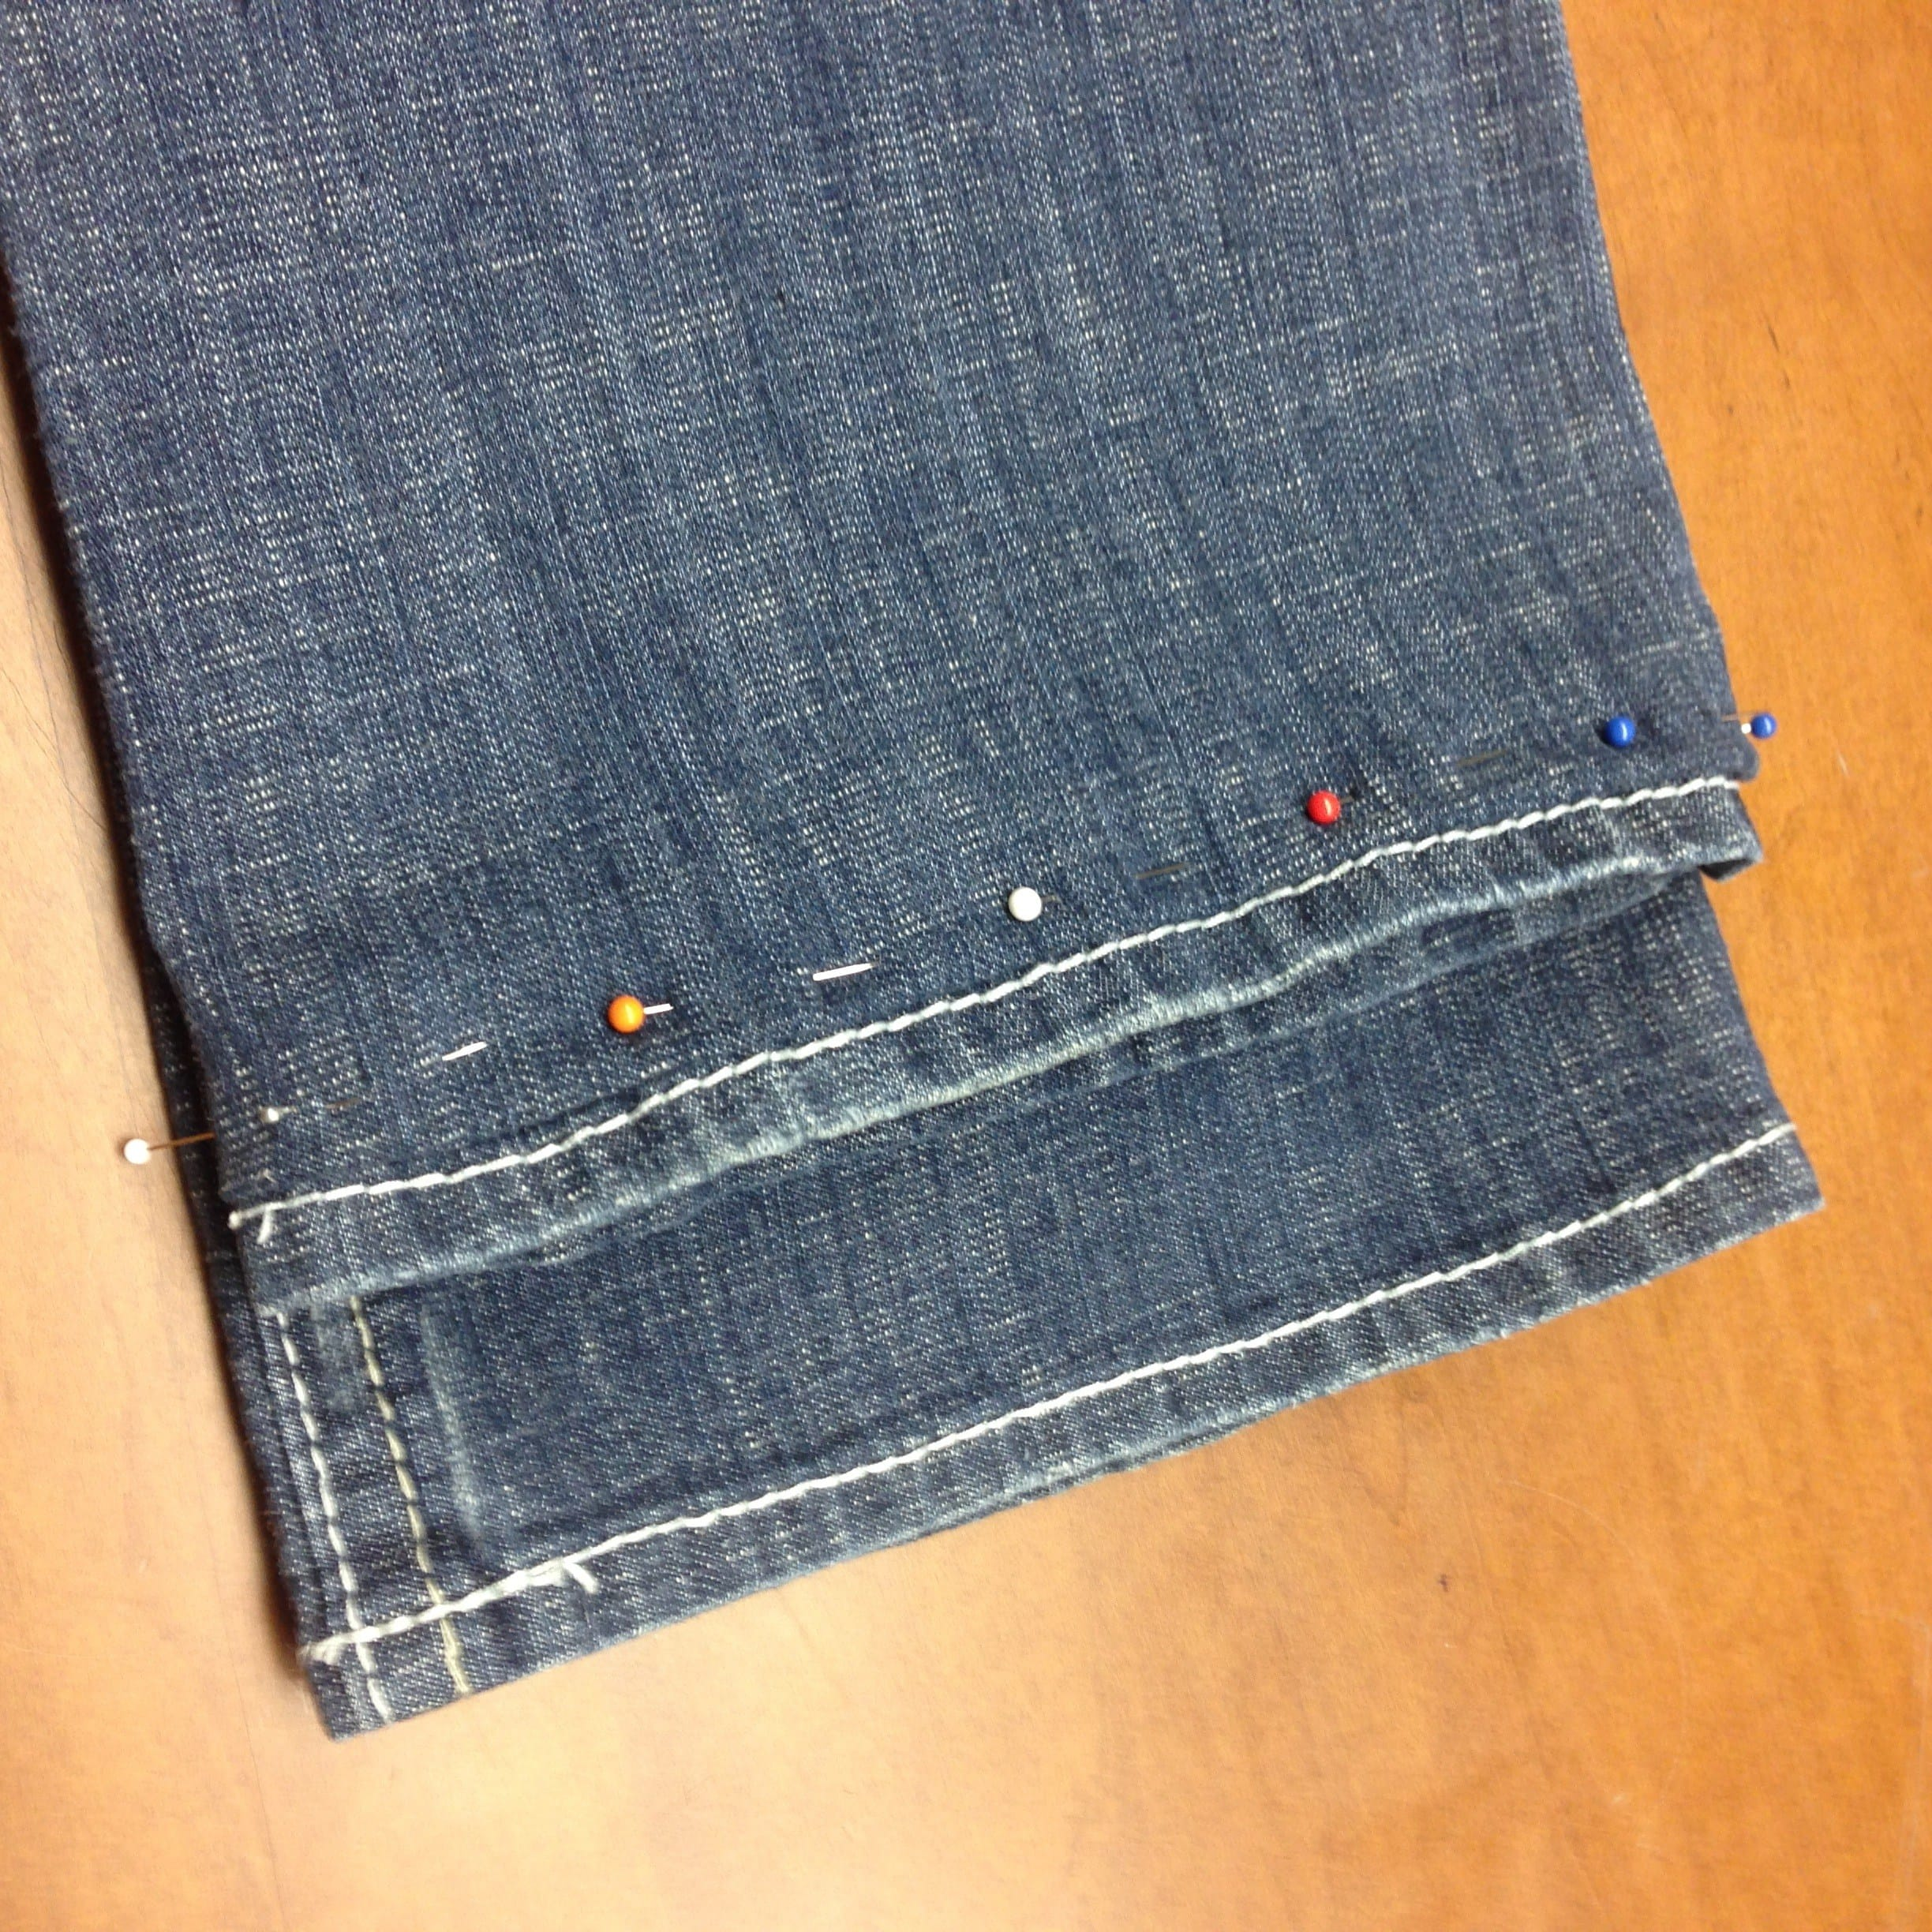 hemming-your-jeans-with-and-keep-the-bottom